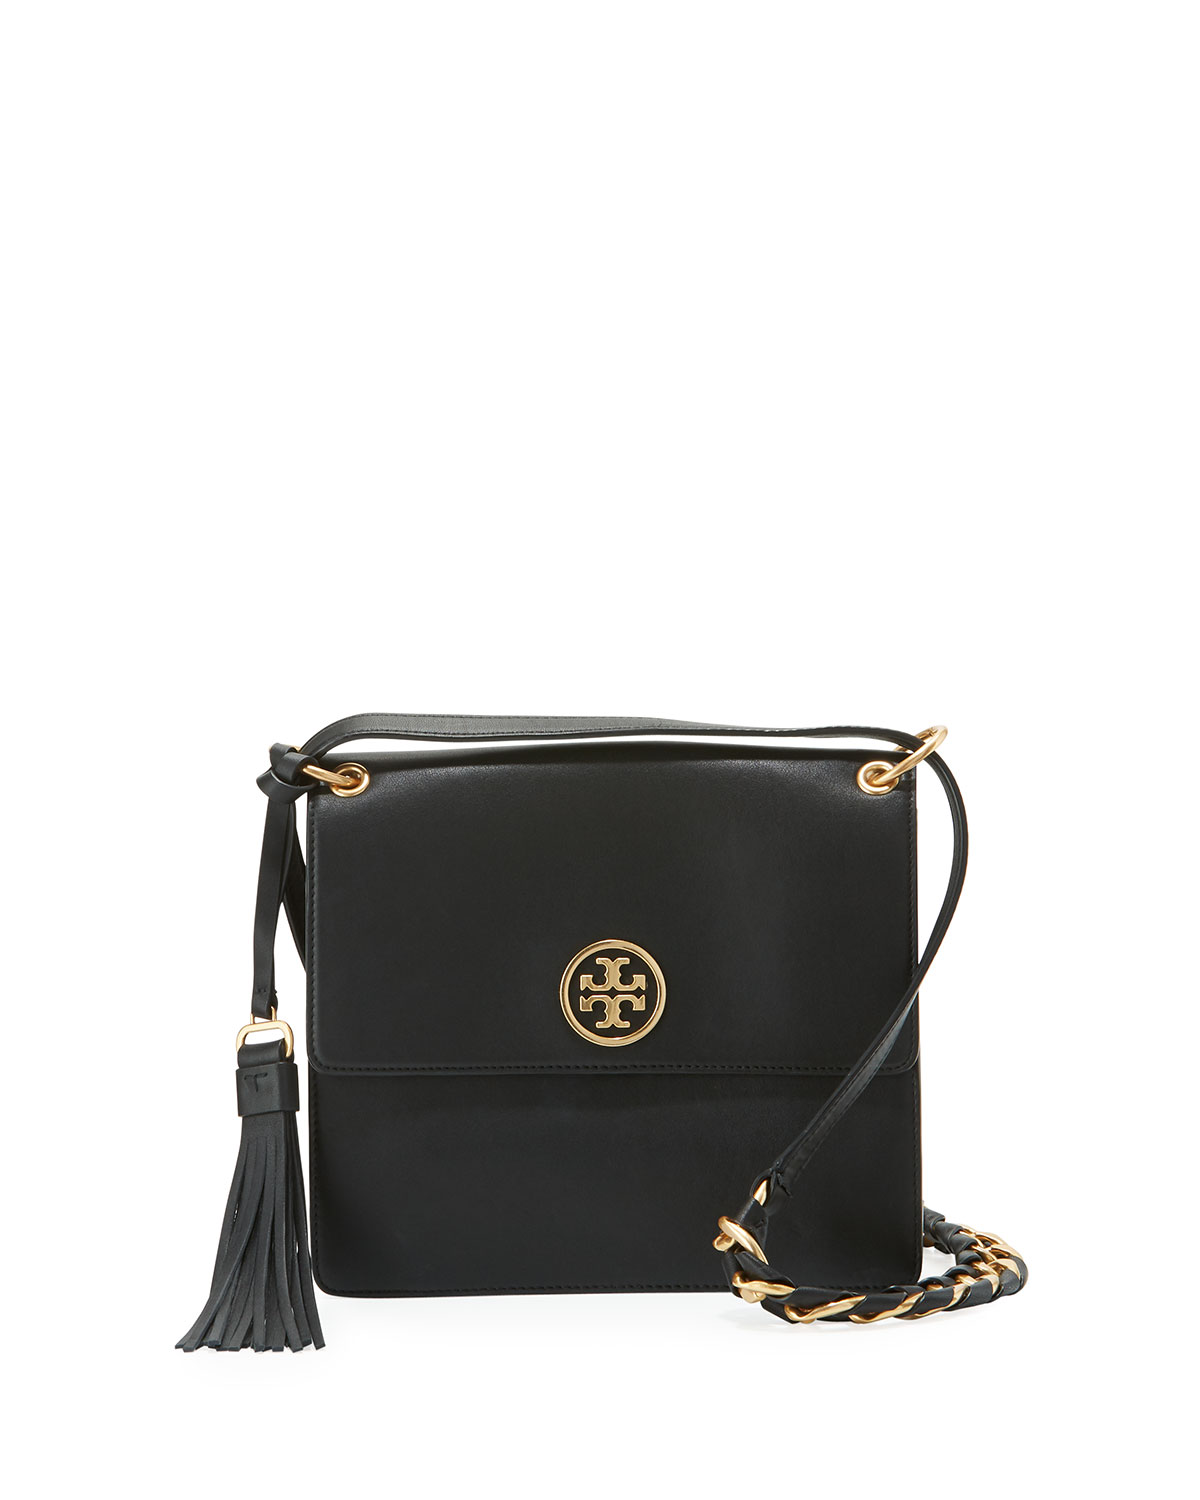 011dbb719cb Tory Burch Brooke Smooth Leather Shoulder Bag